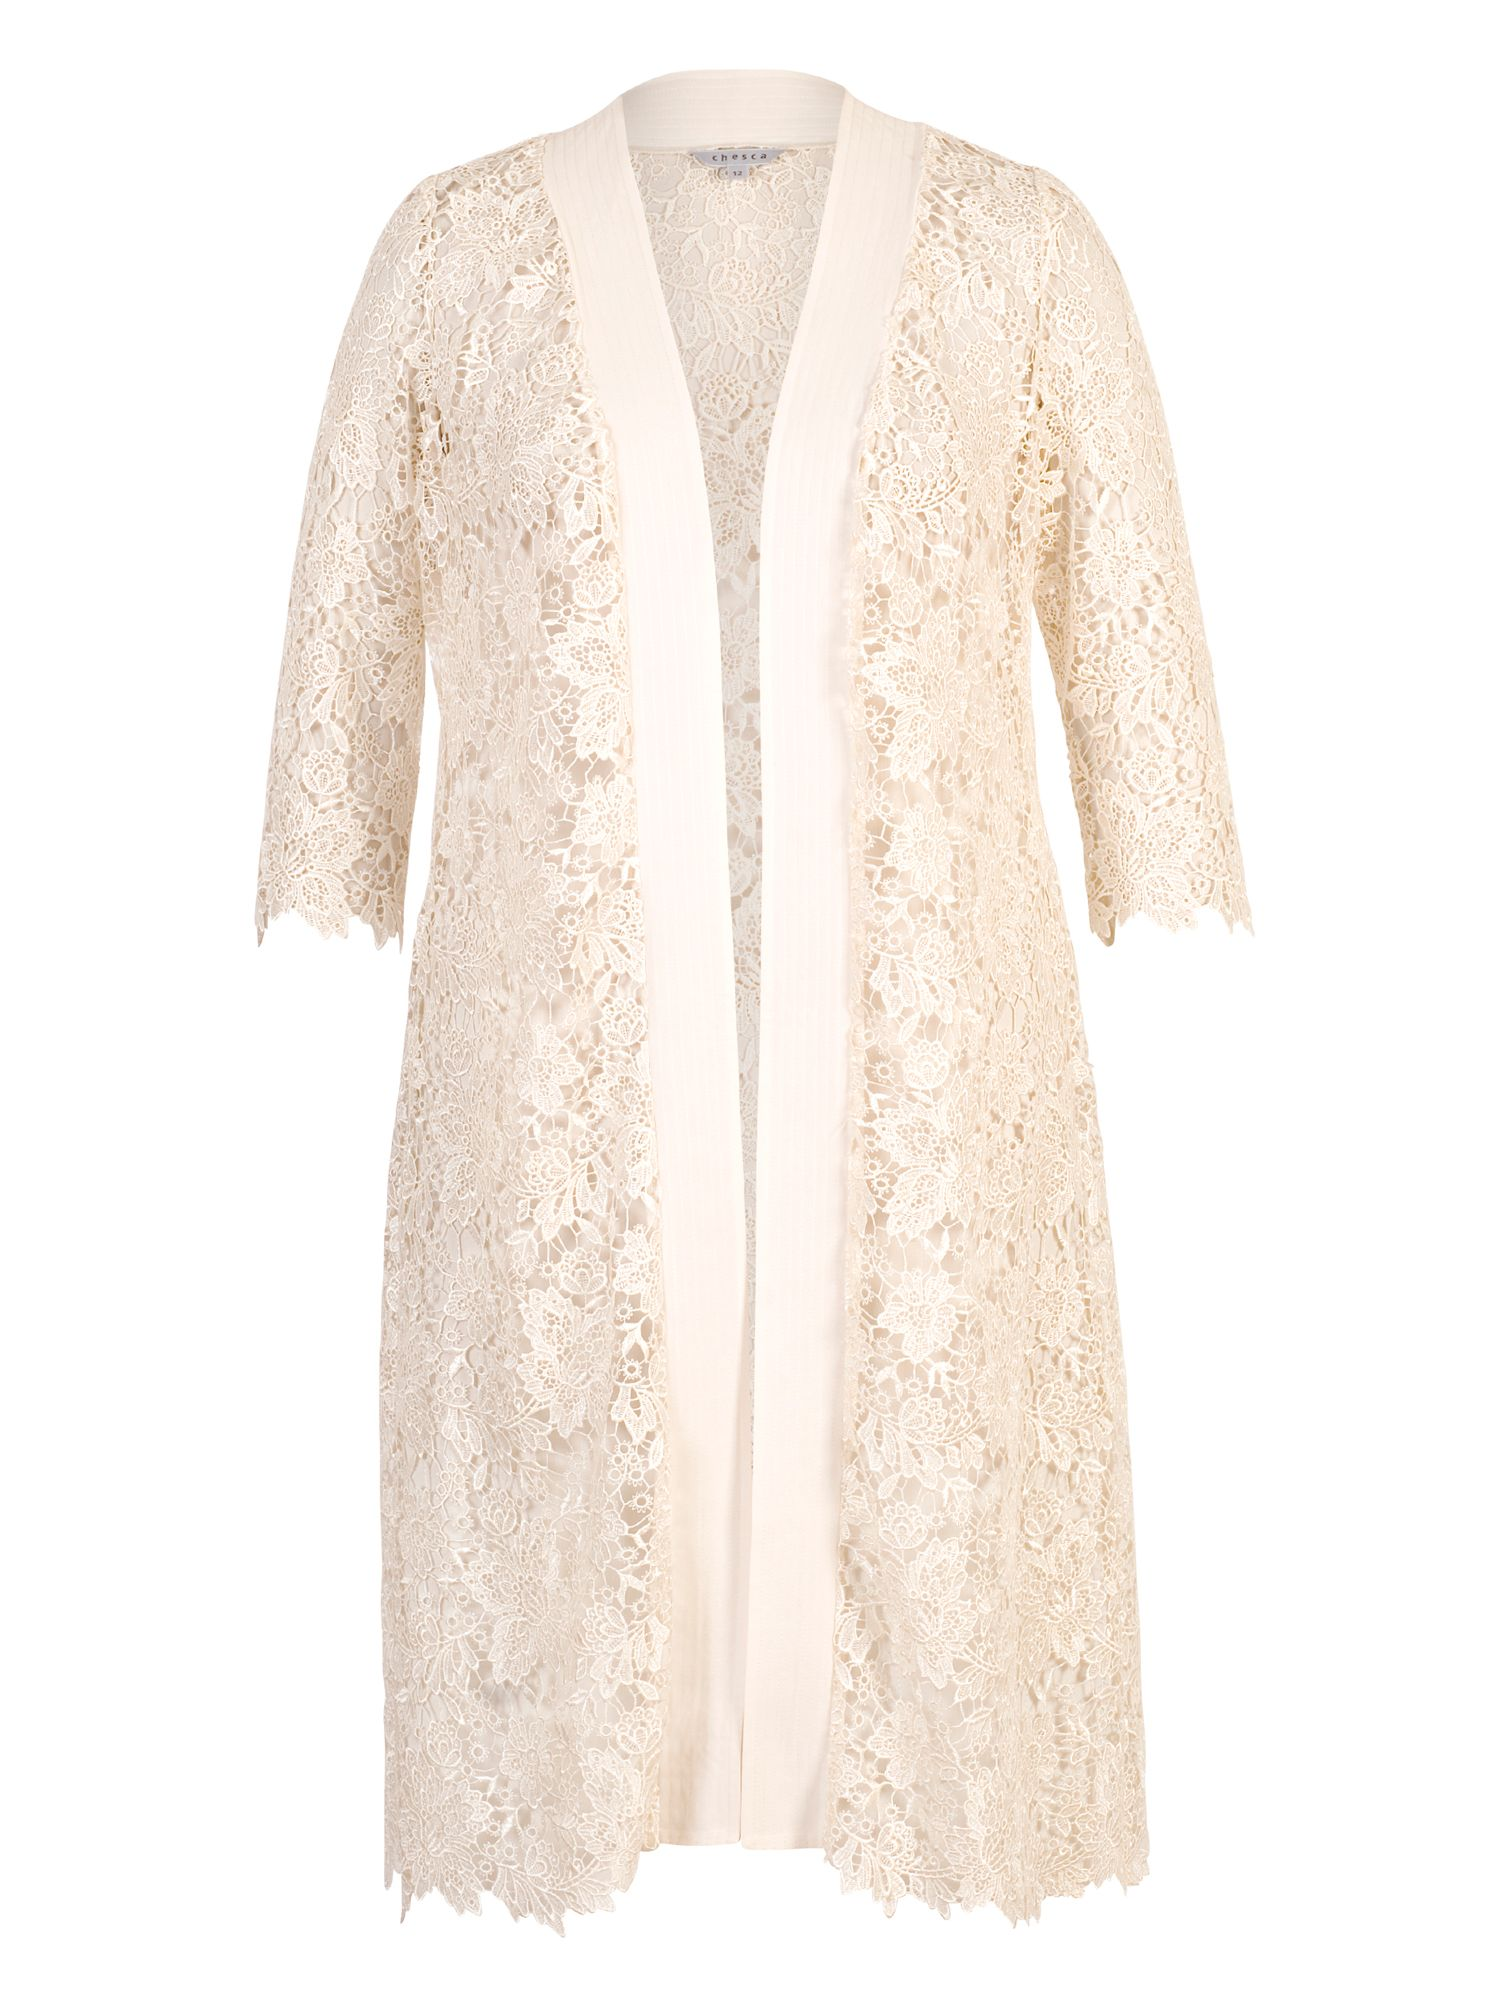 Chesca Gupiere Lace Scallop Tipped Coat, Cream